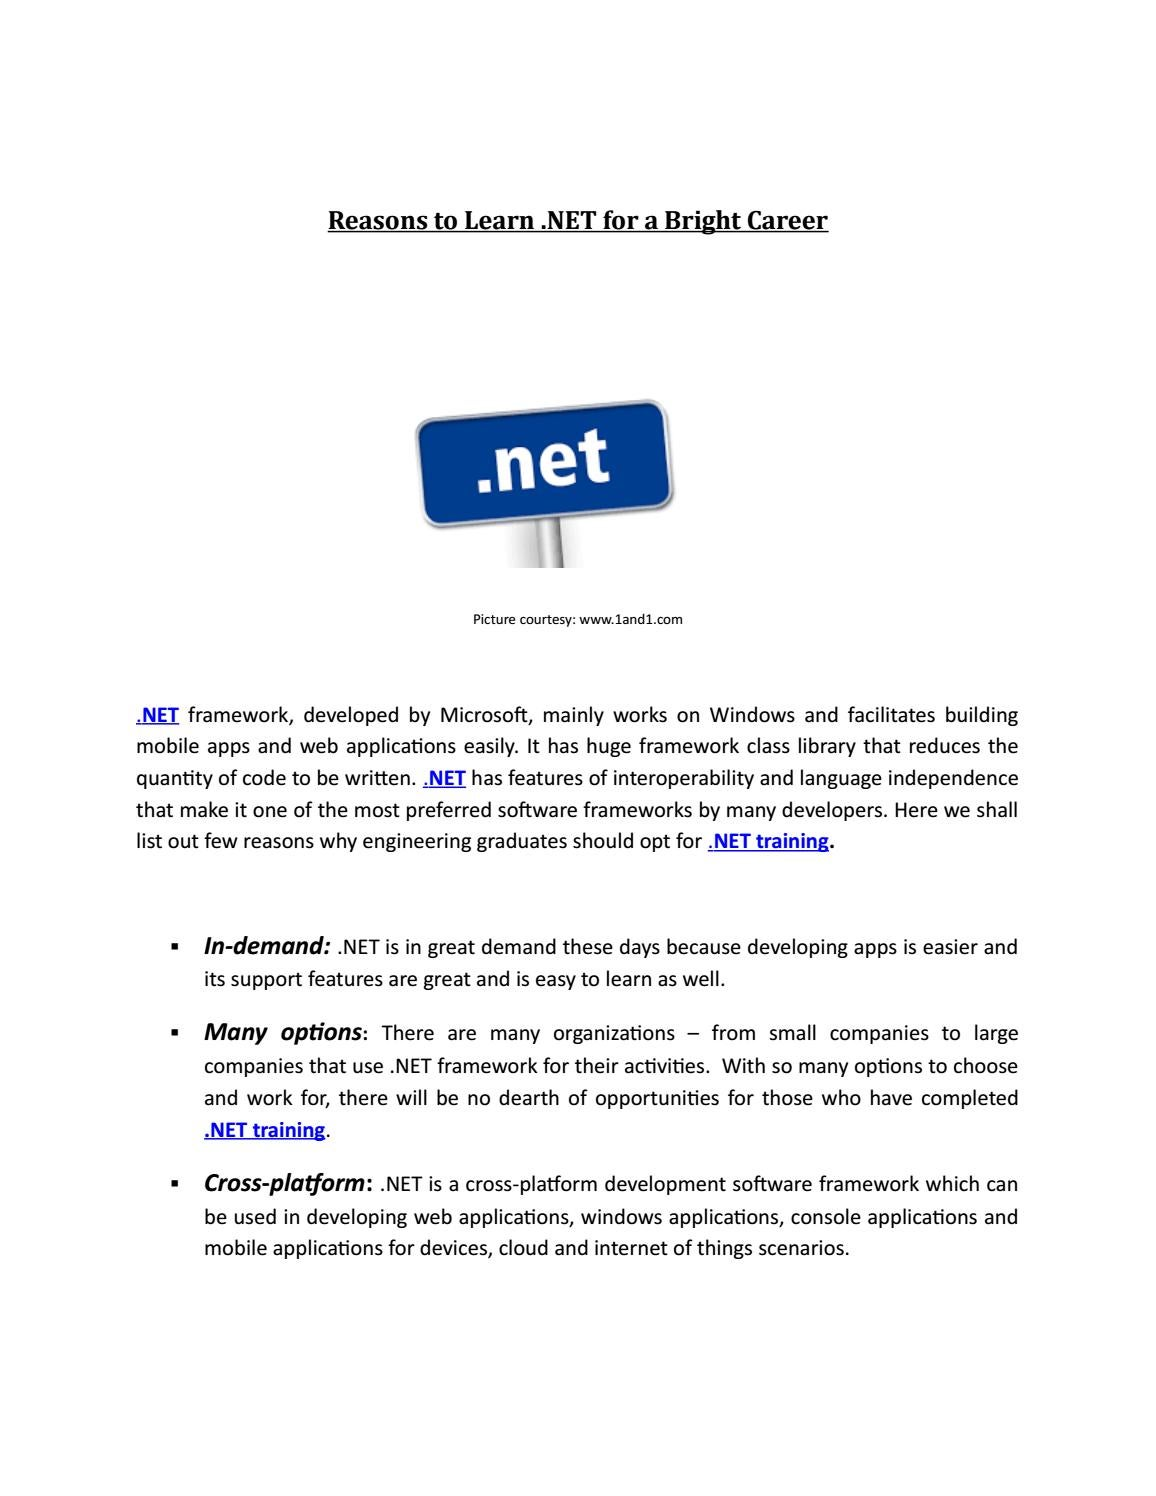 Reasons To Learn  NET for a Bright Career -Ikya Global Edu